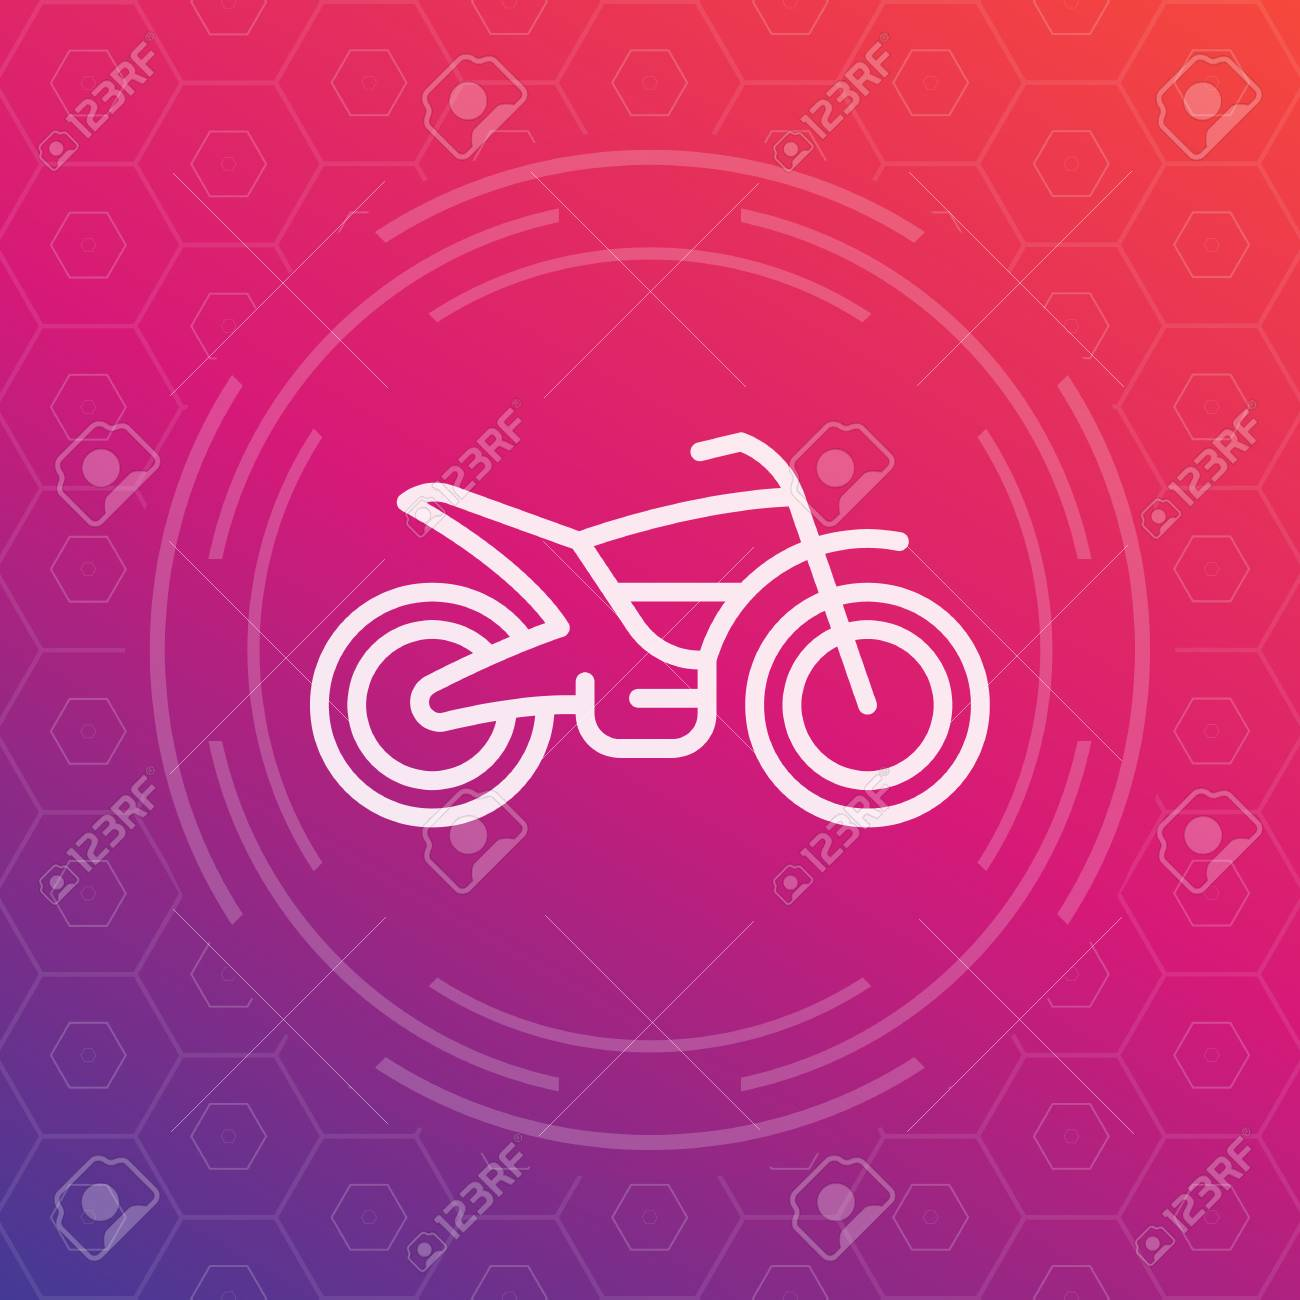 Offroad Bike Motorcycle Linear Icon Vector Pictogram Royalty Free Cliparts Vectors And Stock Illustration Image 78865429